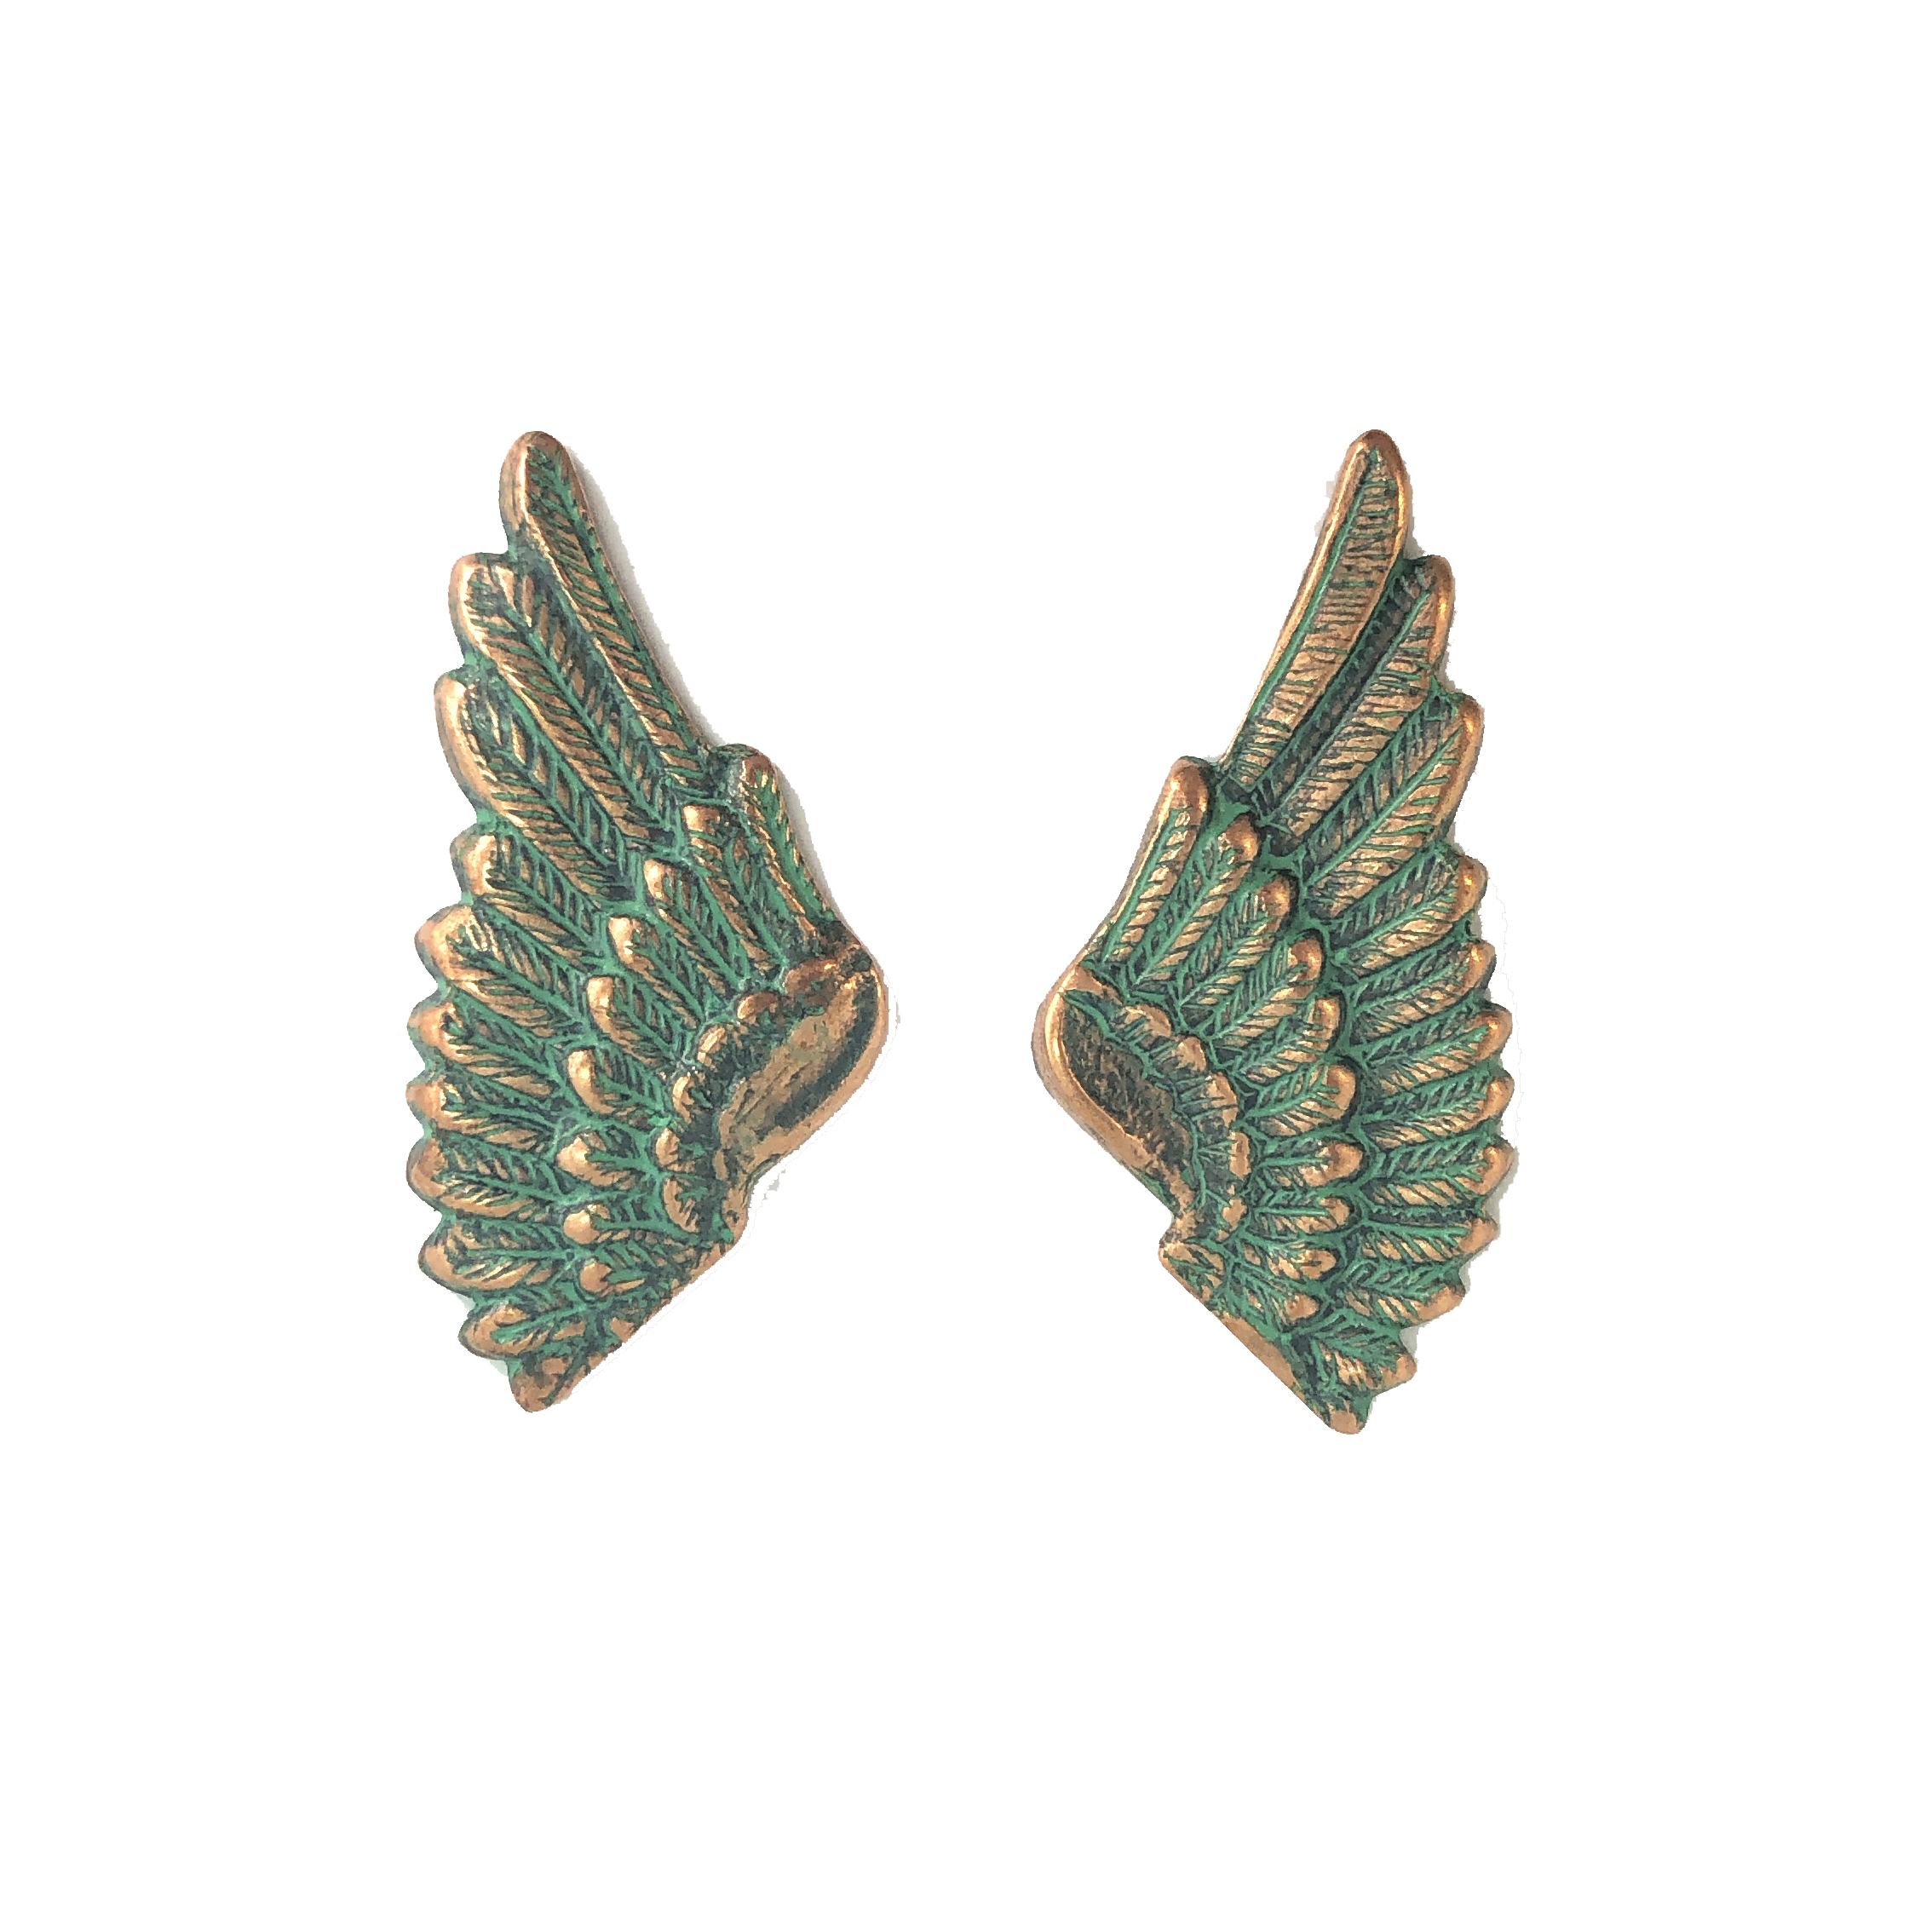 brass wings, bird wings, aqua copper patina, 08224, Steampunk Art, vintage jewelry supplies, jewelry making supplies, brass jewelry parts, US made, nickel free, Bsue Boutiques, wings, small wings, aqua, copper